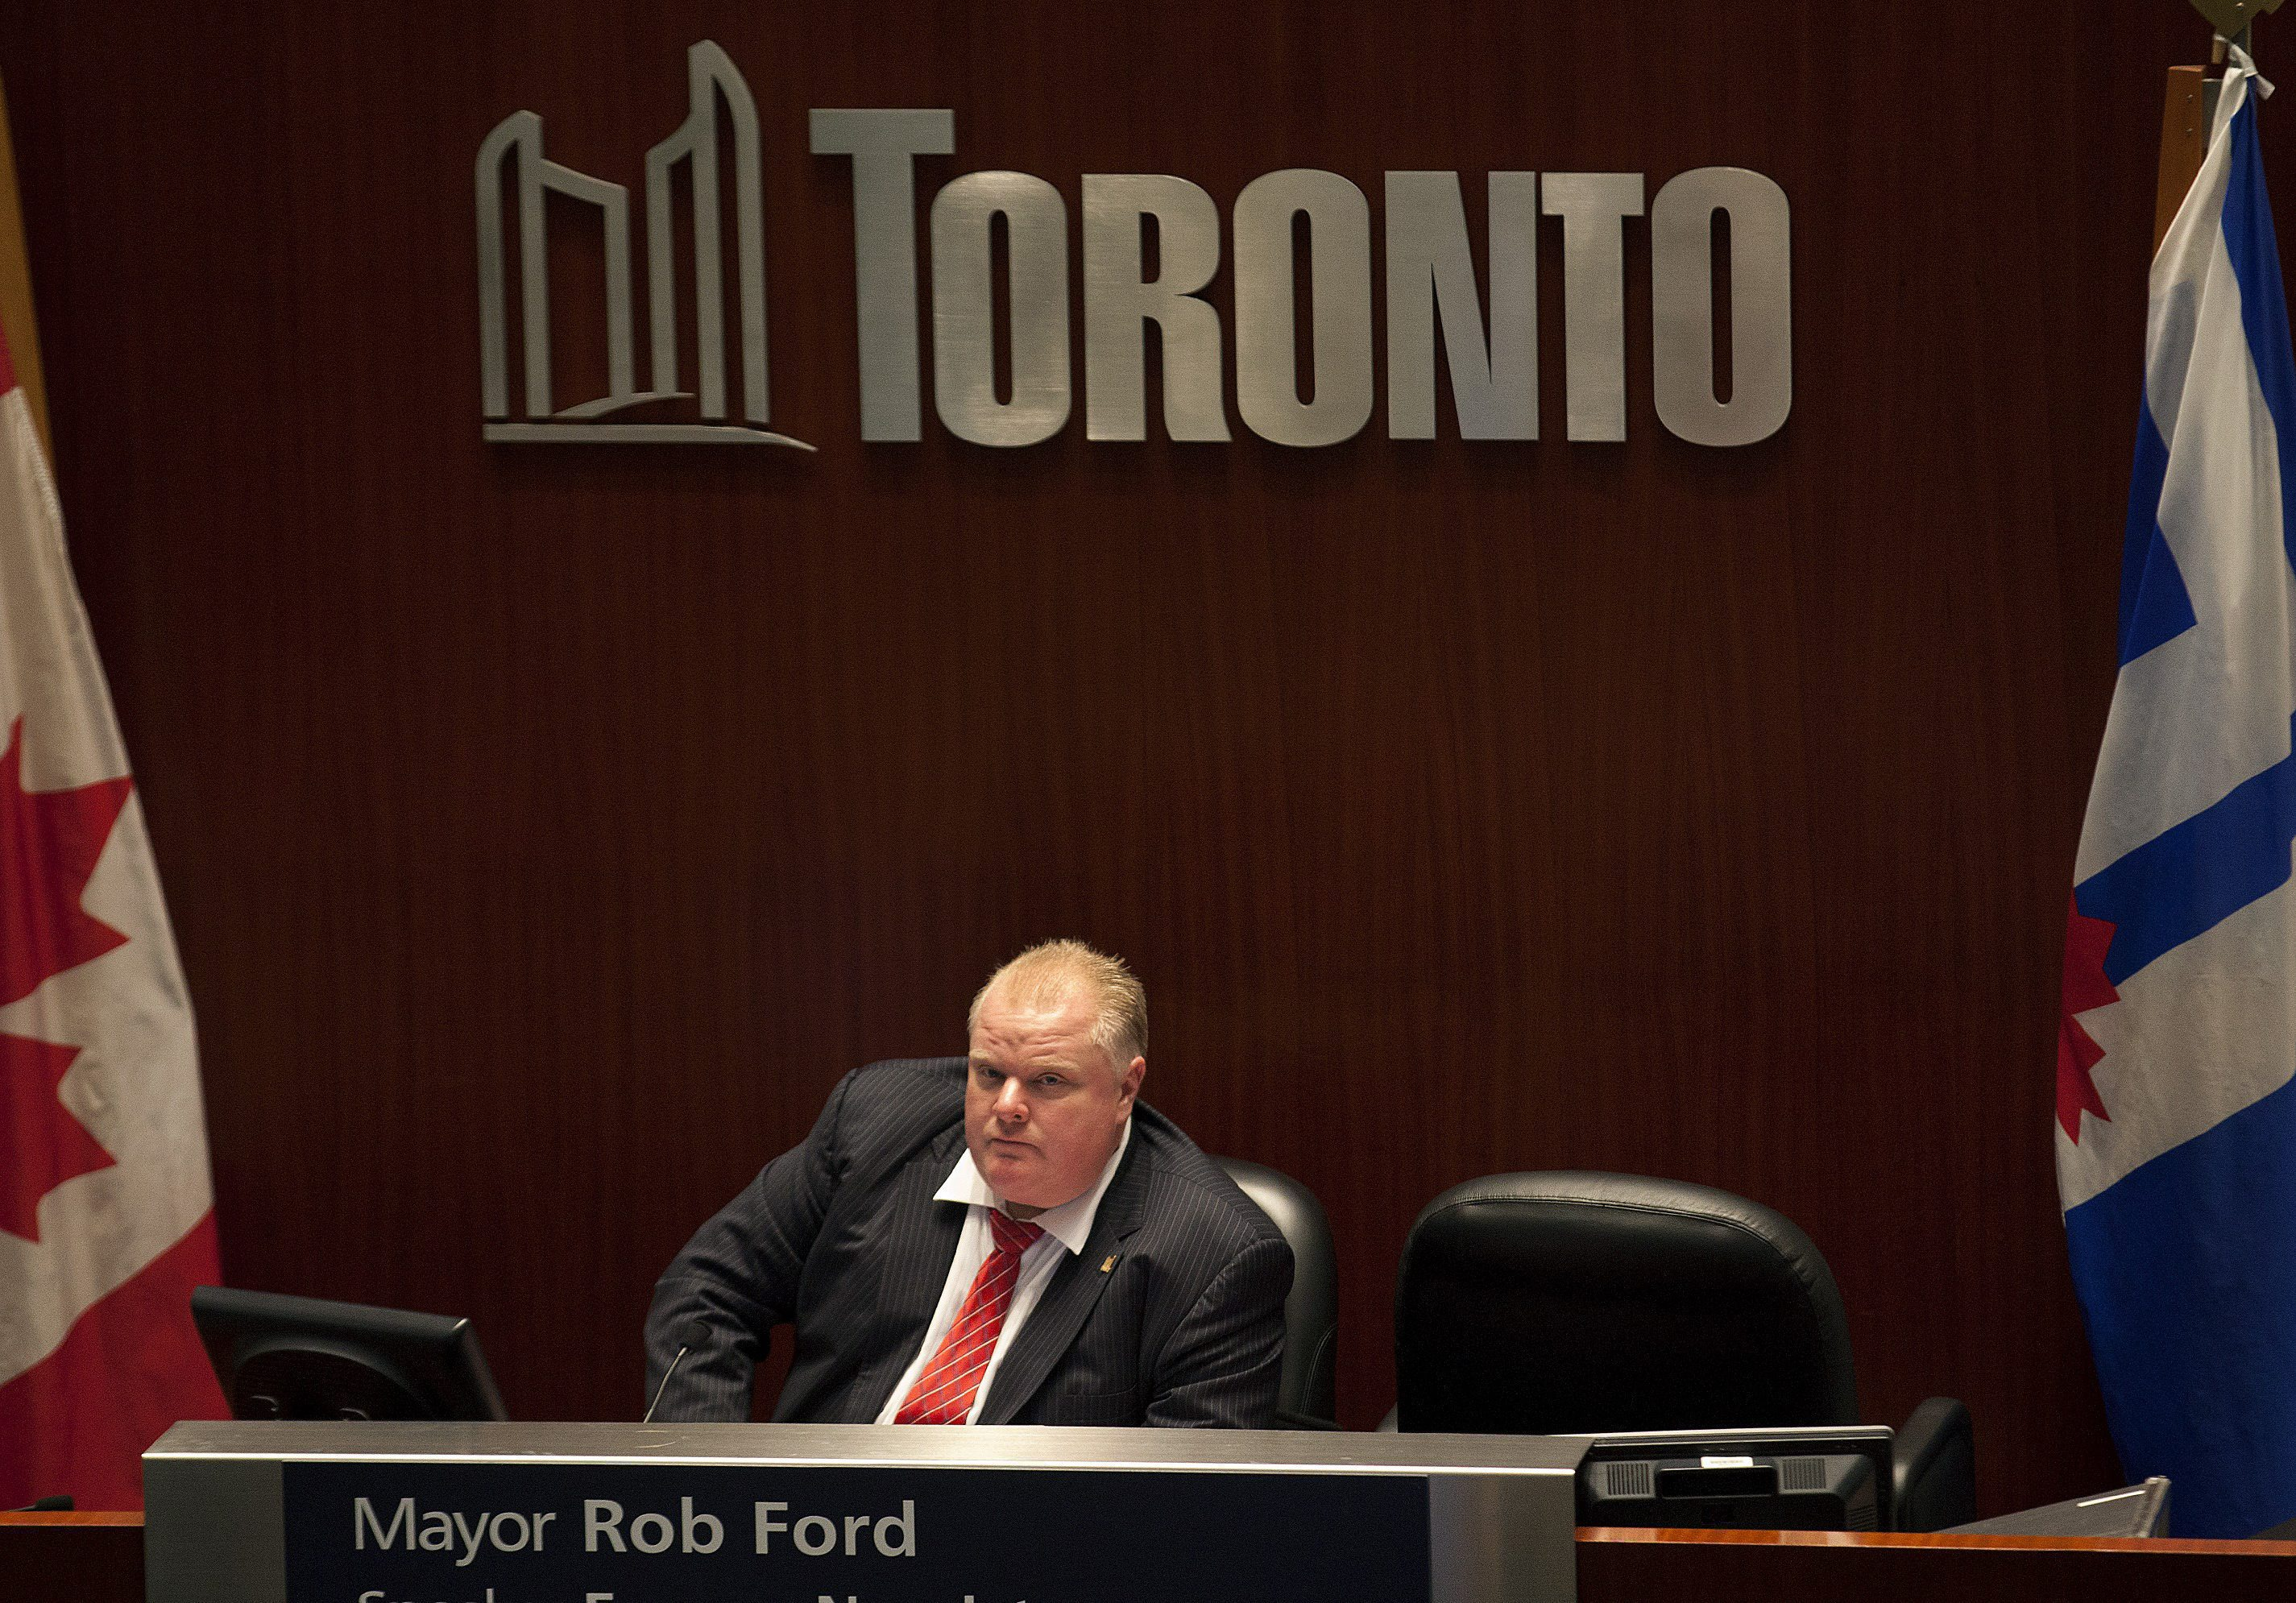 Mayor Rob Ford in the Speaker's seat at Toronto City Hall on November 18, 2013.